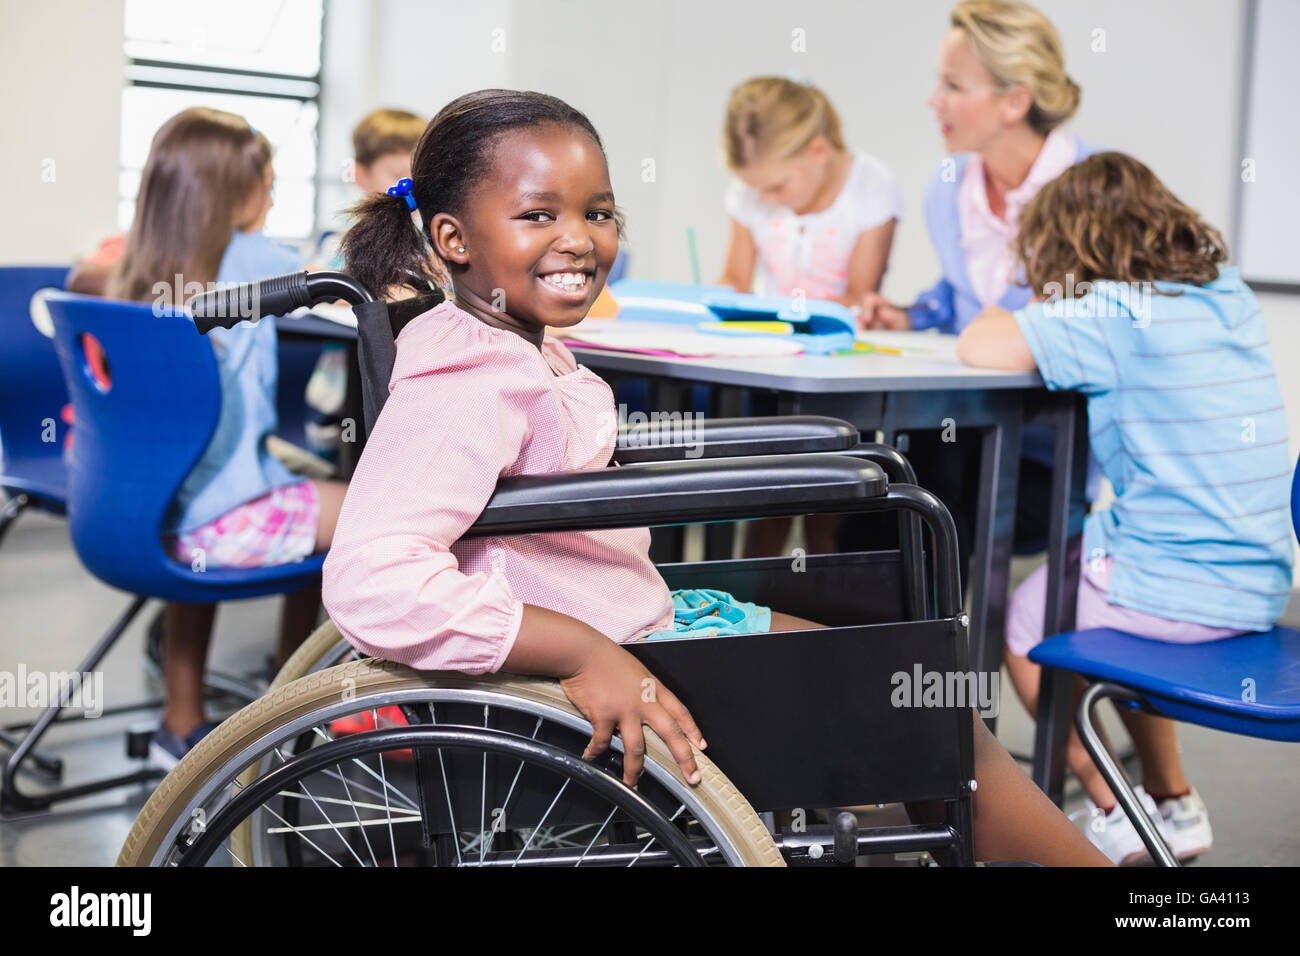 Disabled schoolgirl smiling in classroom - Stock Image